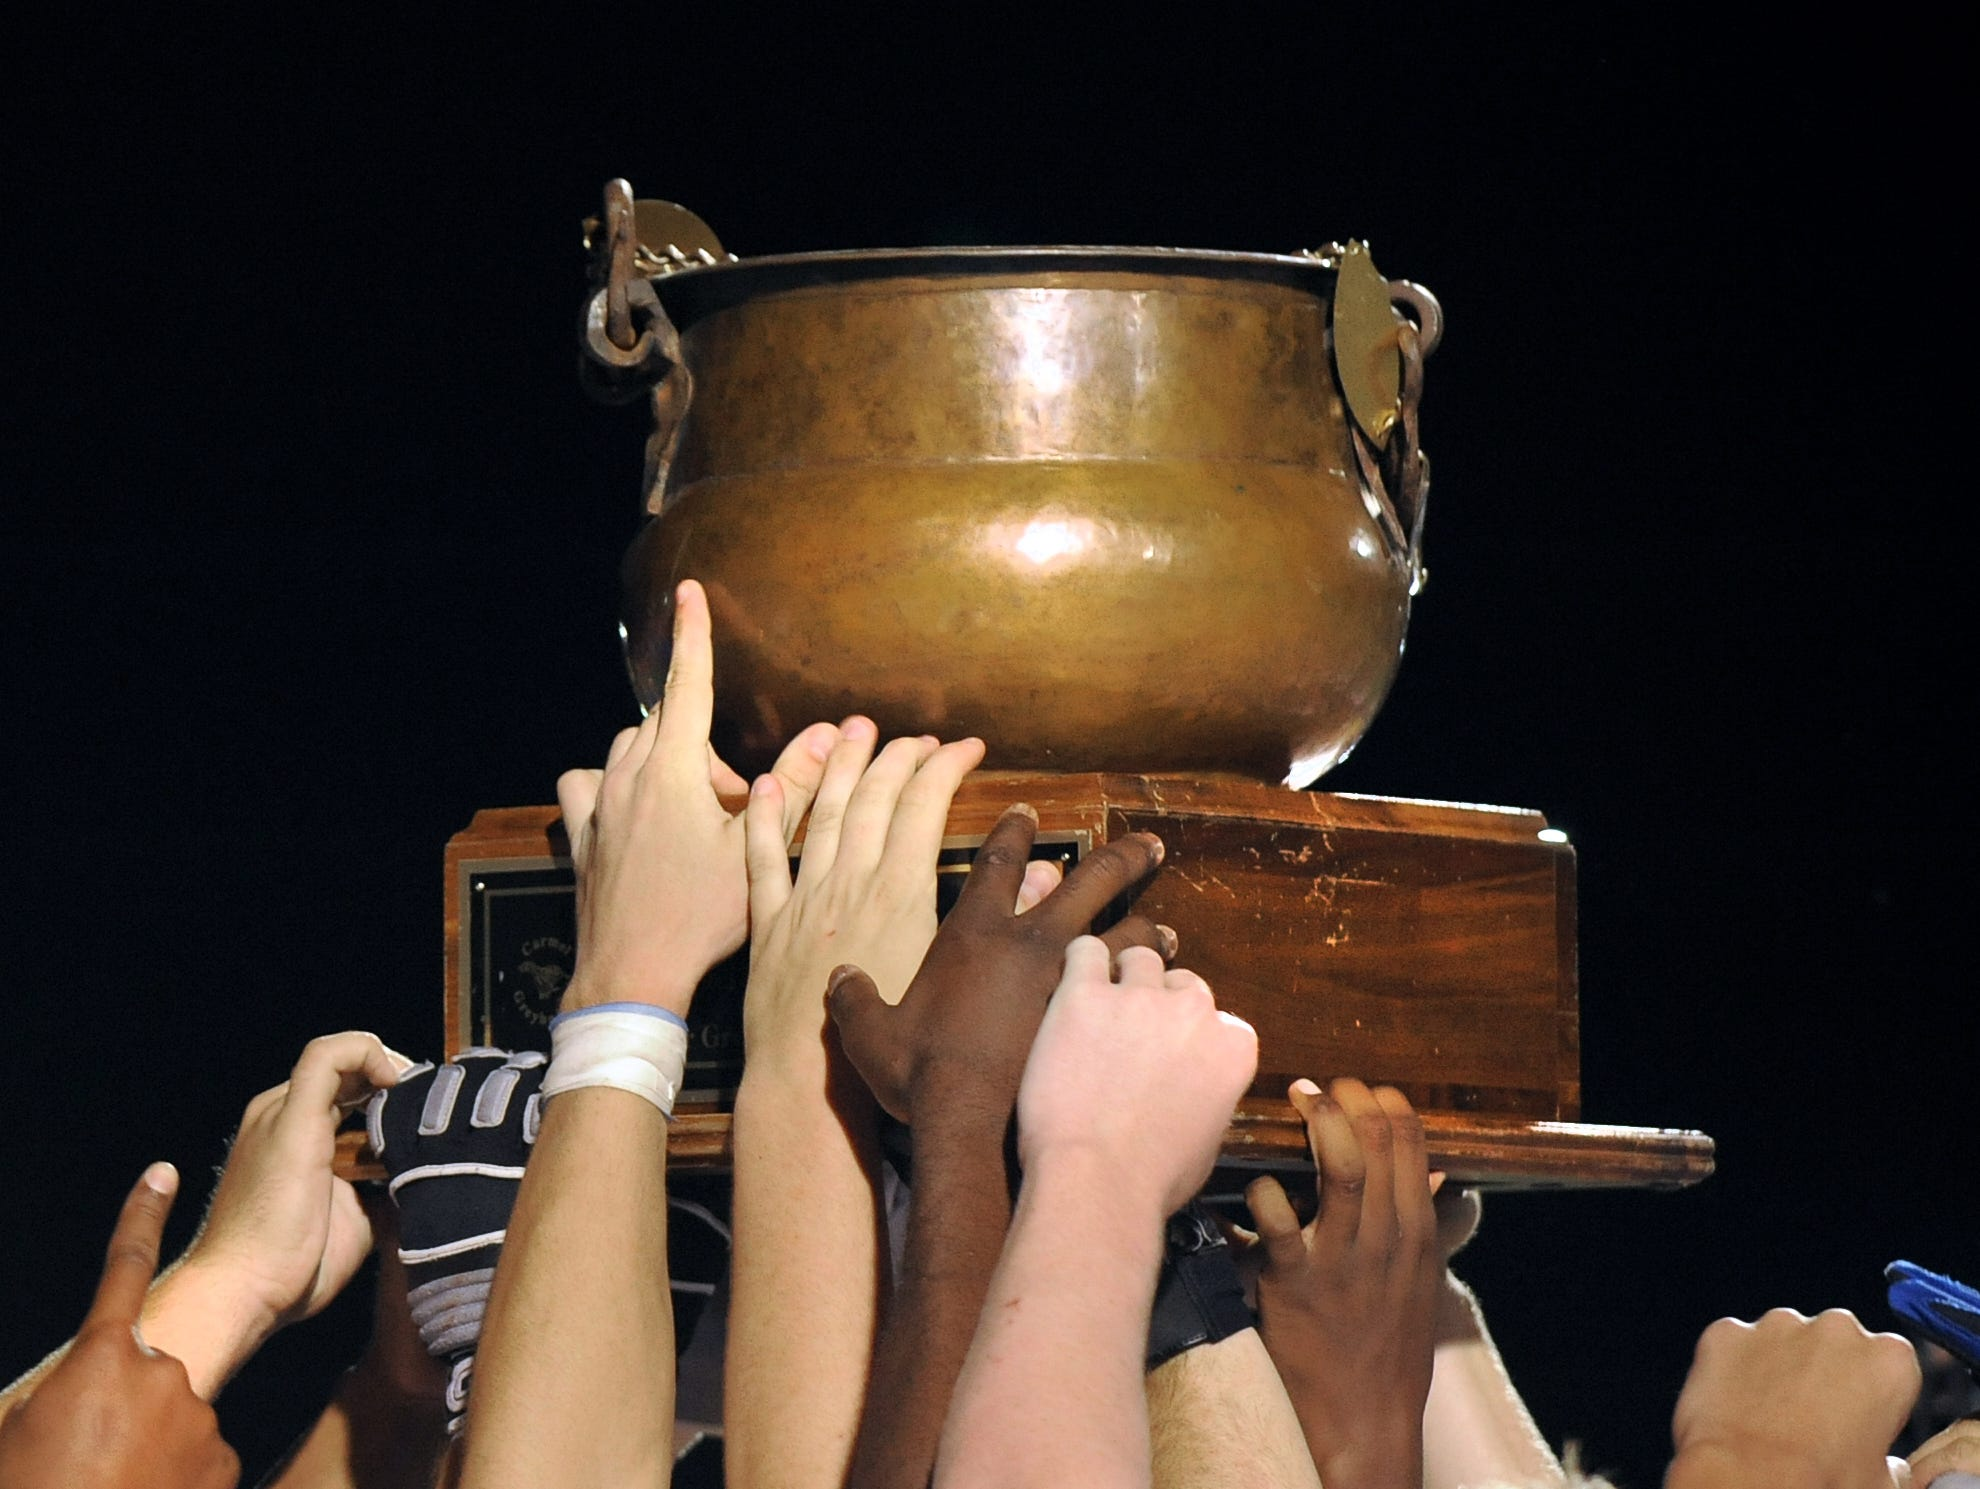 The Copper Kettle is up for grabs in tonight's MIC Network Game of the Week.